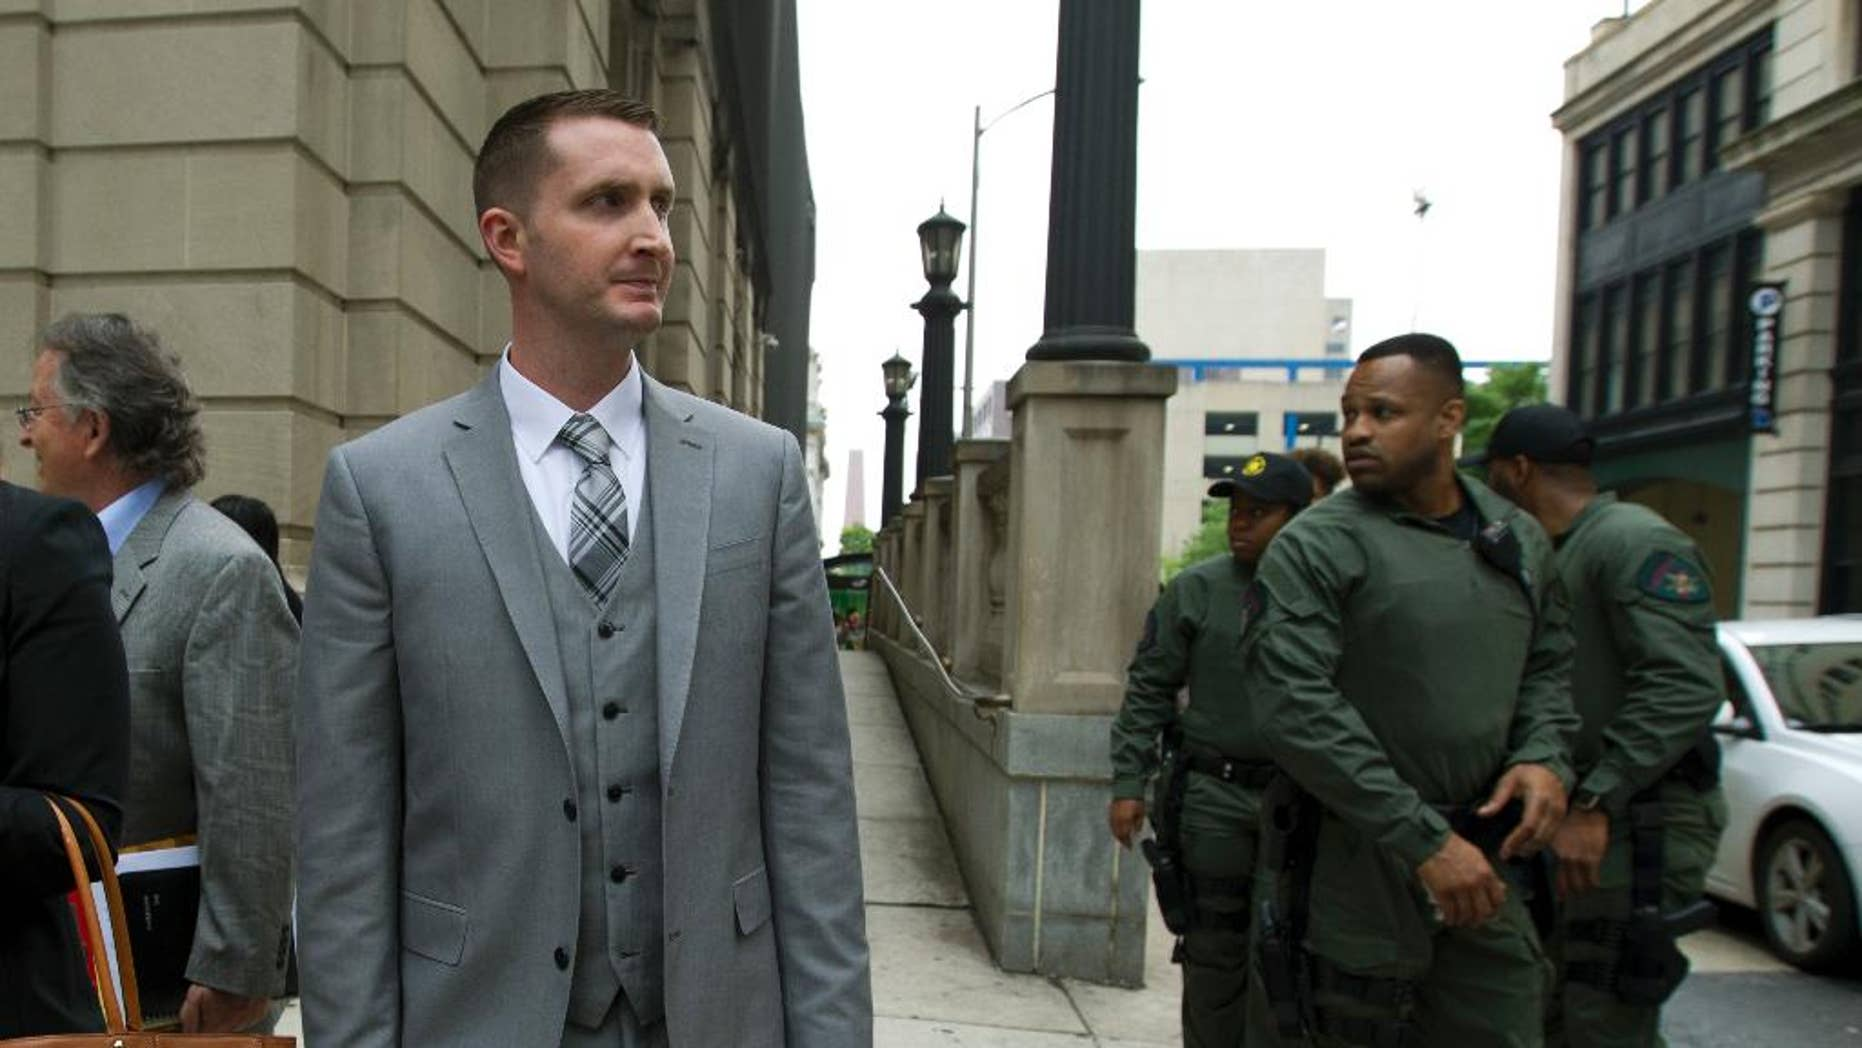 Officer Edward M. Nero one of six Baltimore city police officers charged in connection to the death of Freddie Gray, walks outside of the courthouse on a lunch break during the beginning of his trial, Thursday, May 12, 2016, in Baltimore.  (AP Photo/Jose Luis Magana)